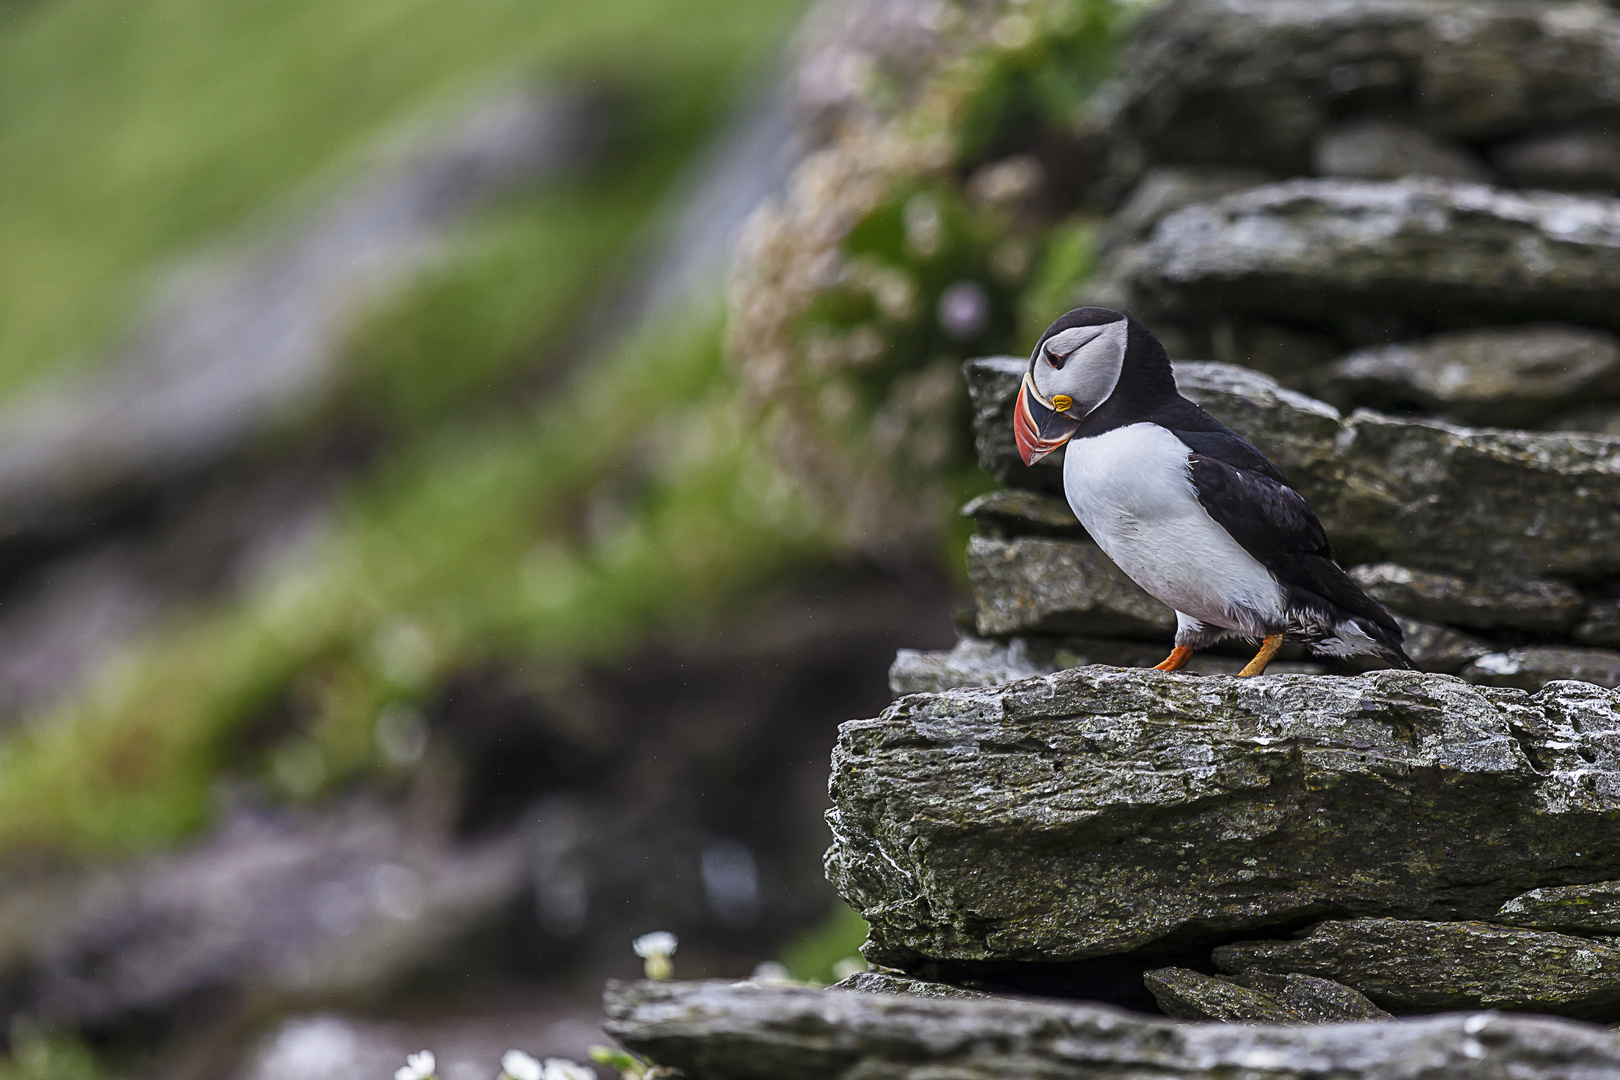 Stairway to the puffins...